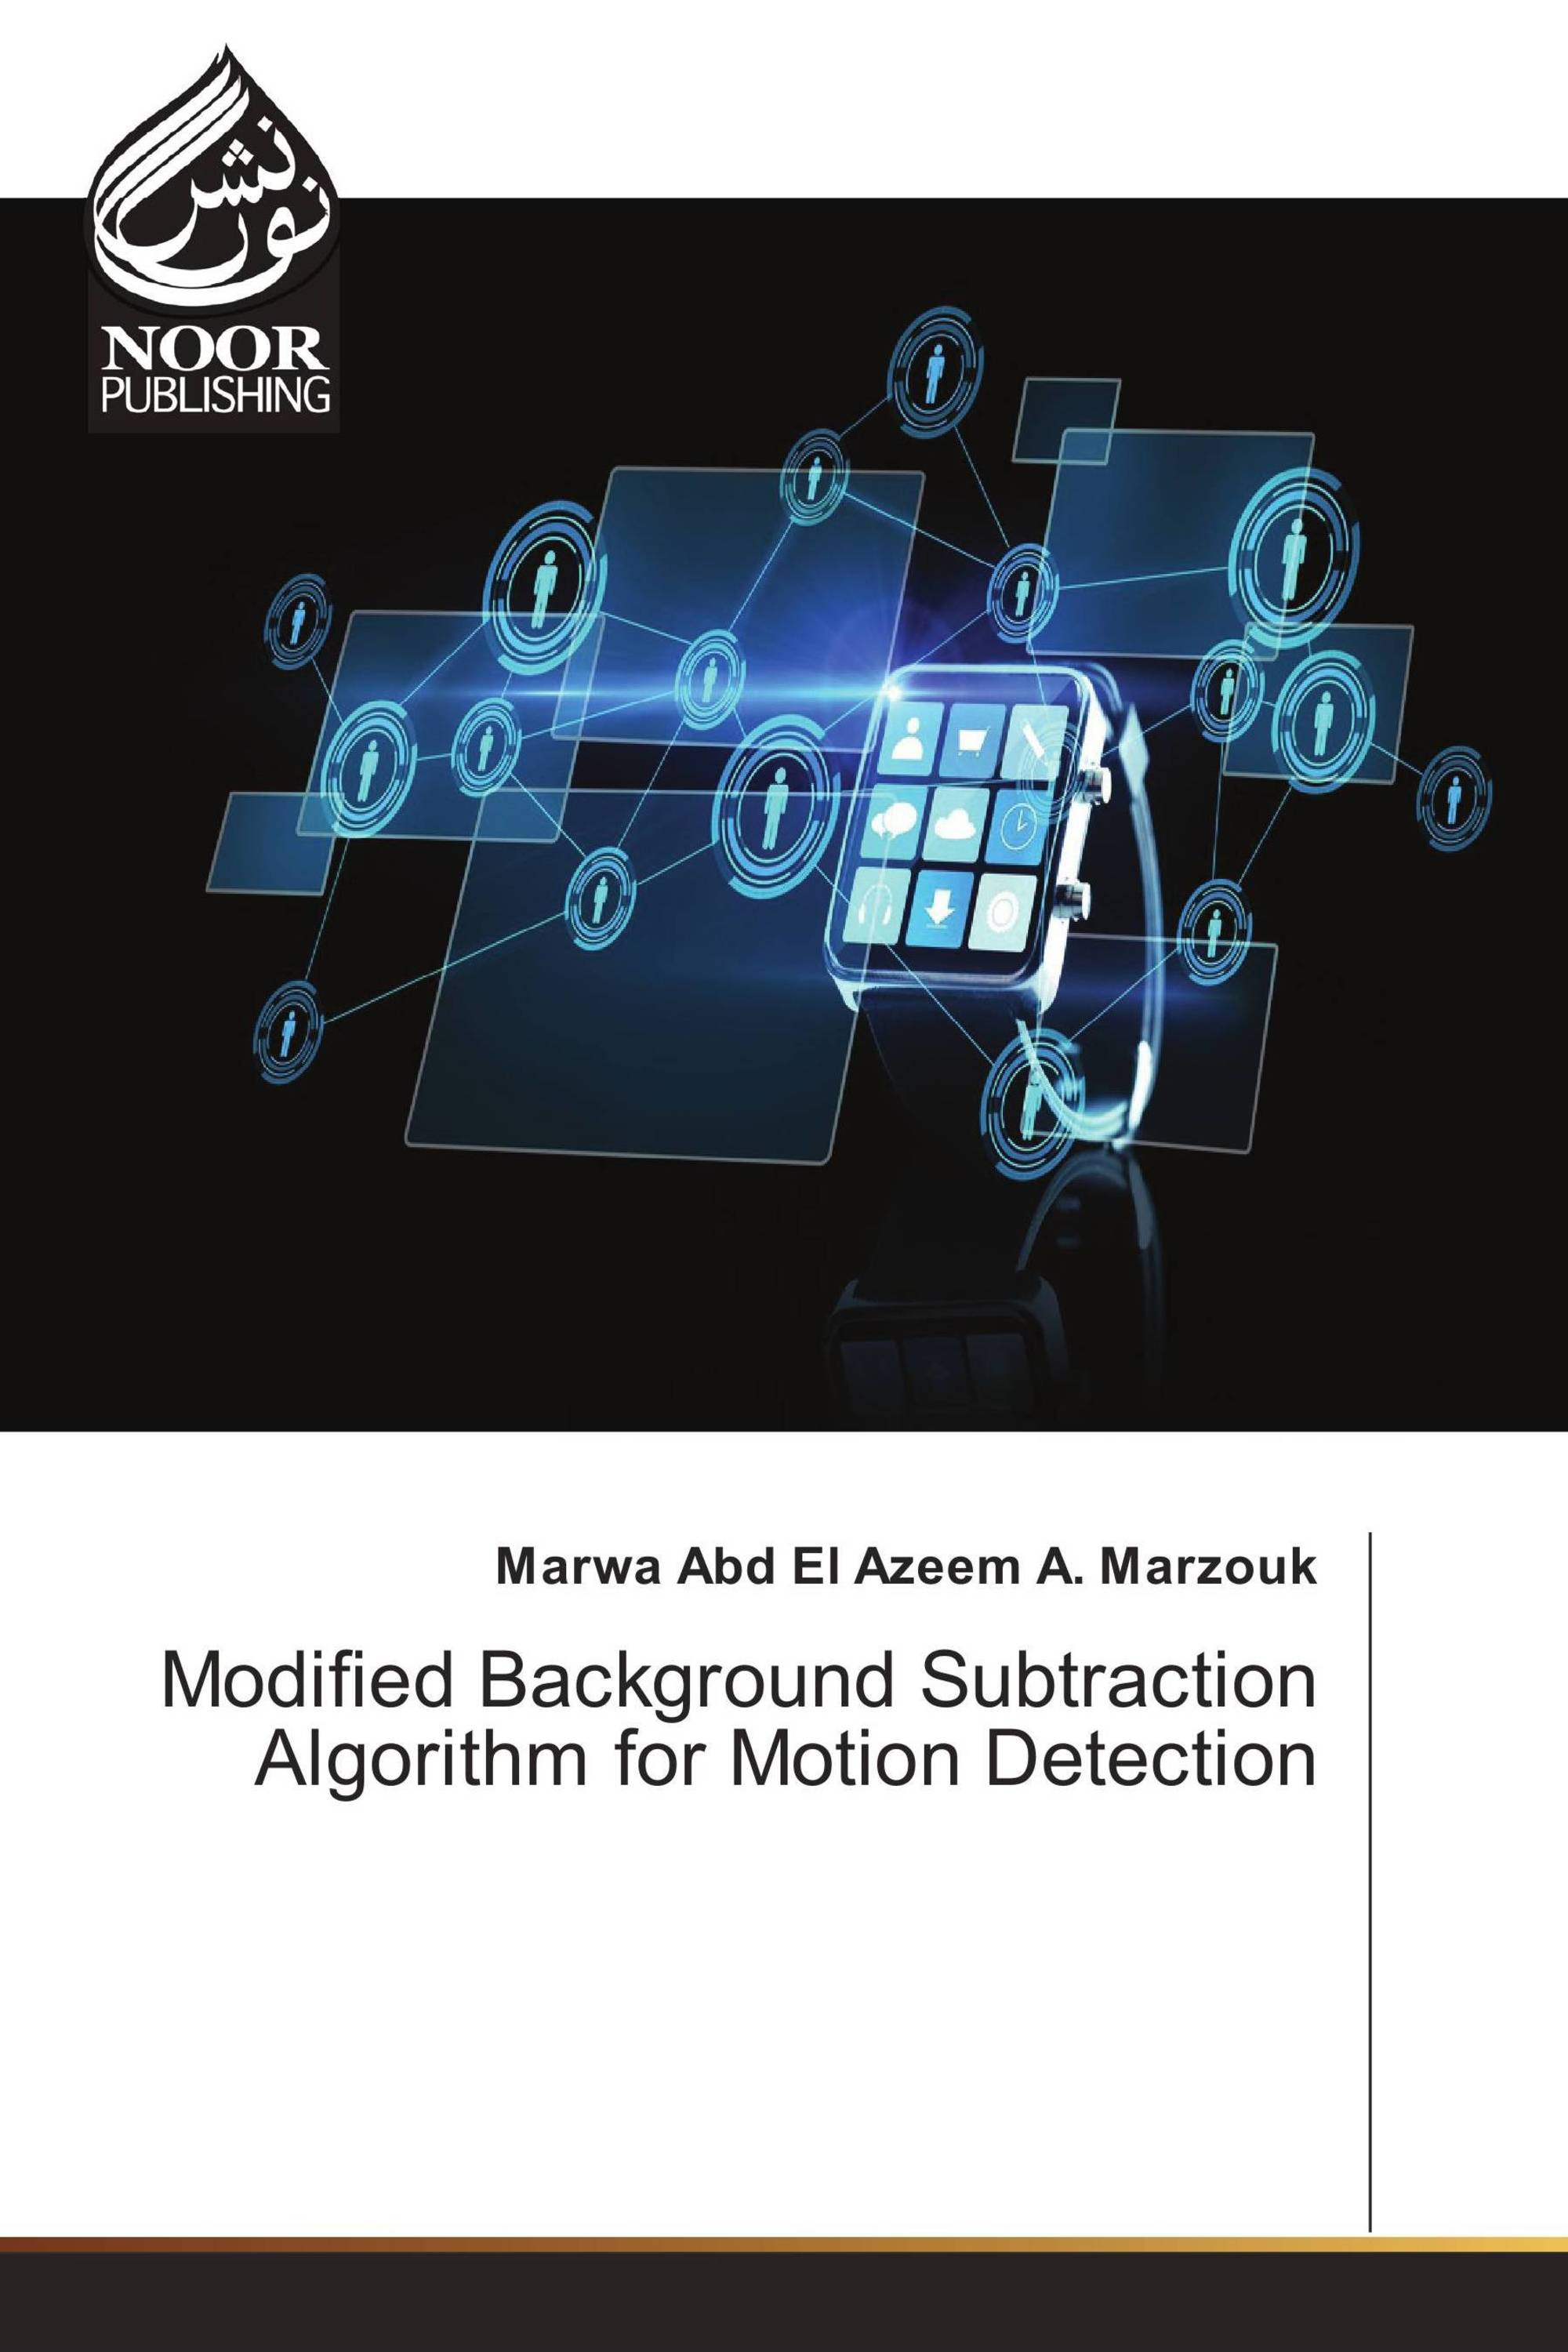 Modified Background Subtraction Algorithm for Motion Detection